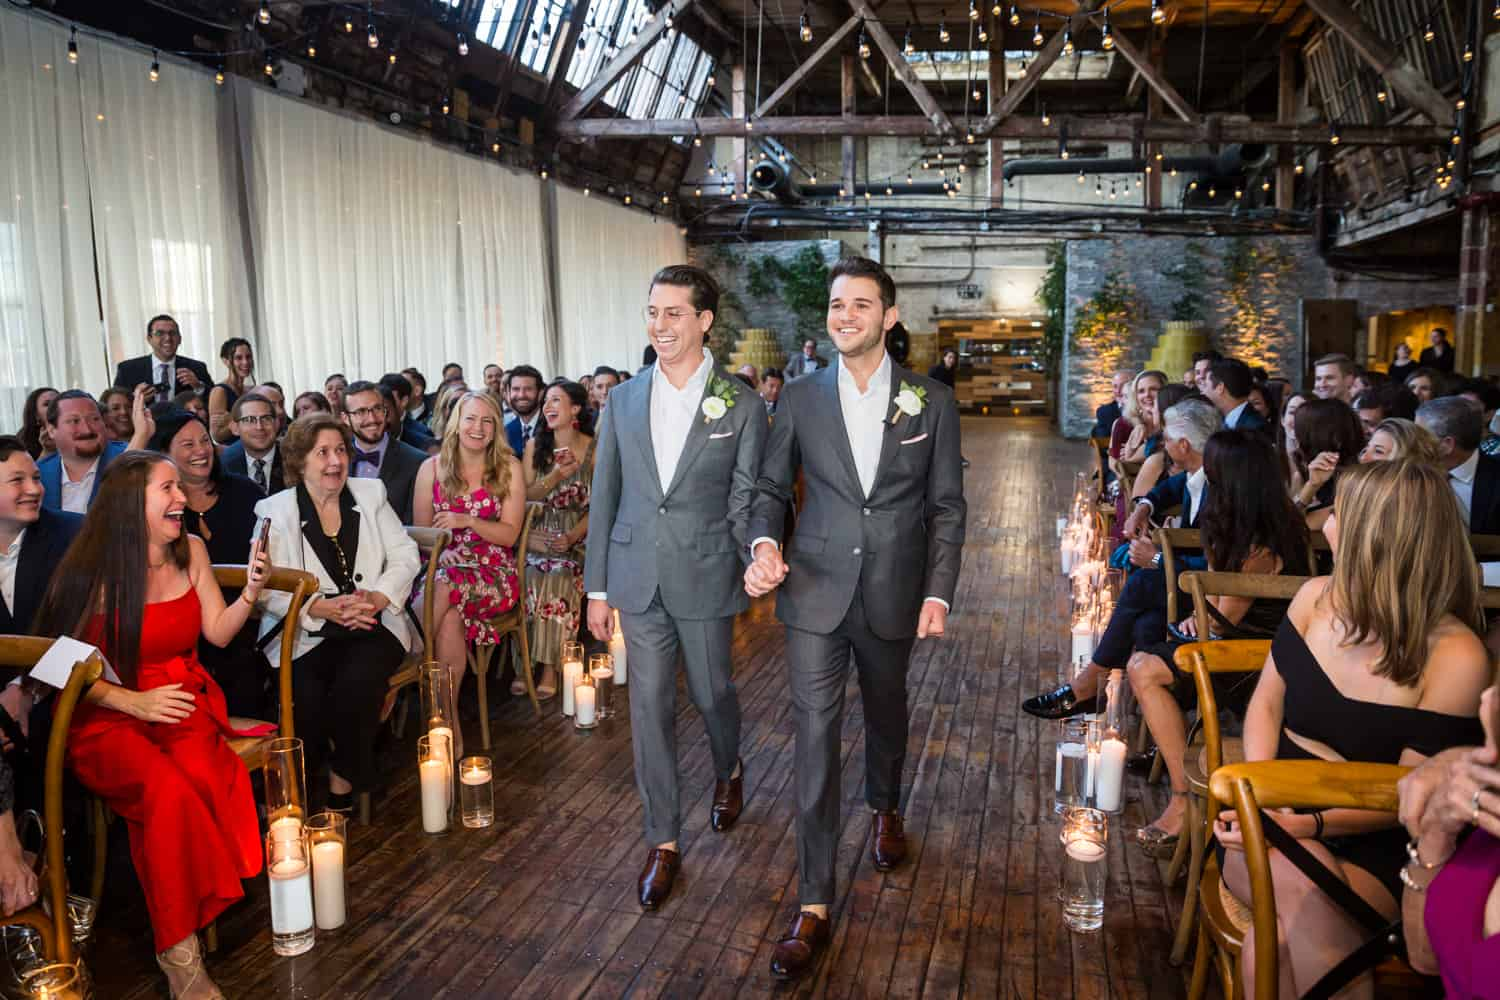 Greenpoint Loft wedding photos of two grooms walking down aisle